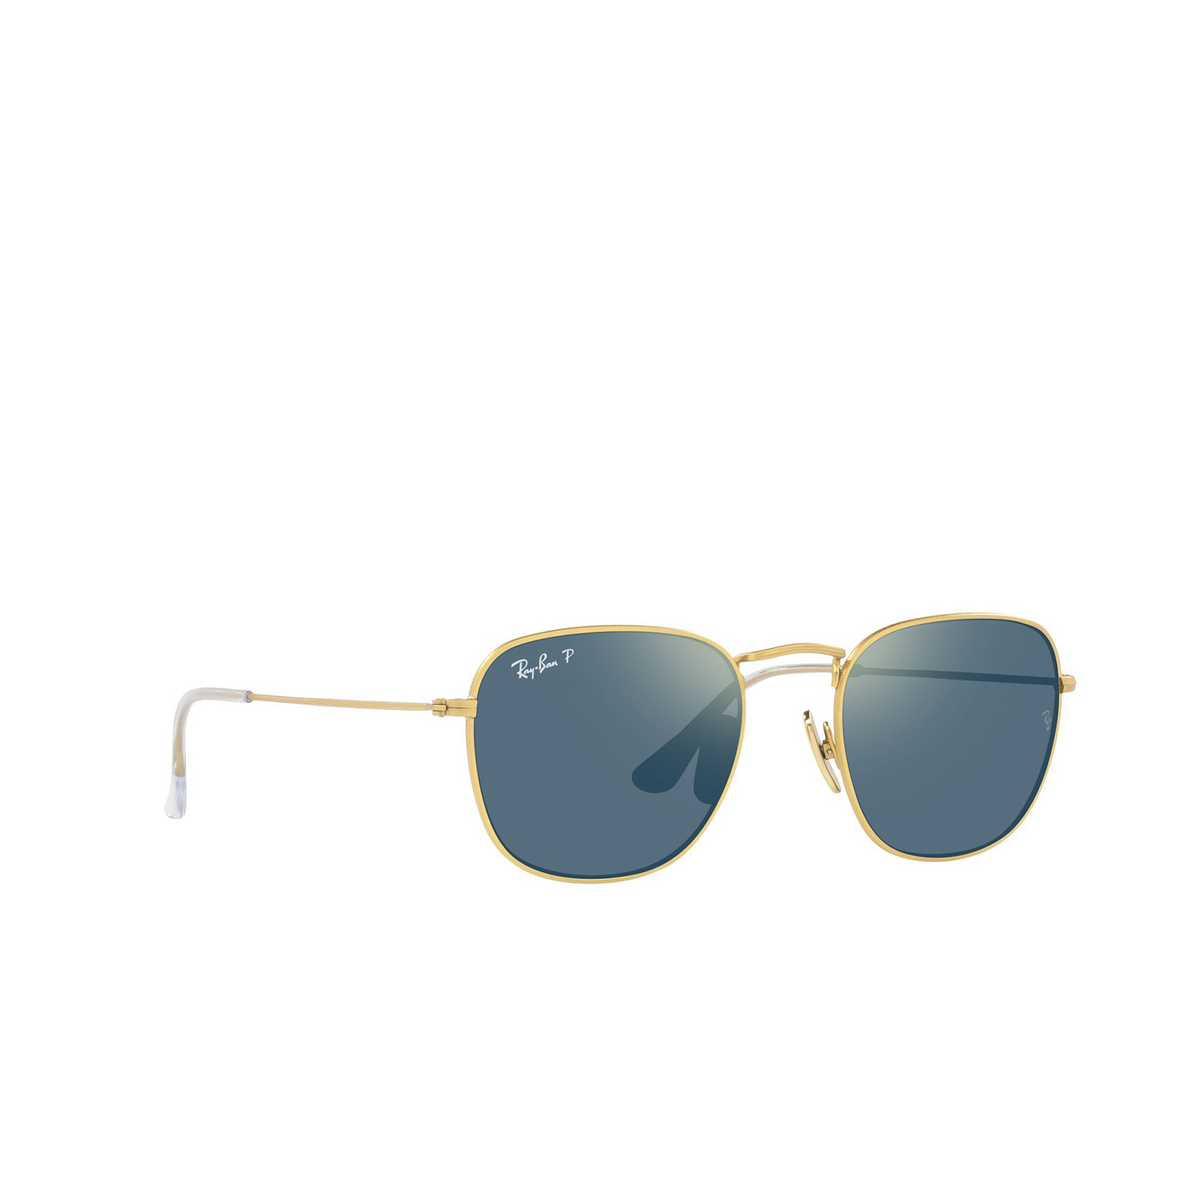 Ray-Ban® Square Sunglasses: Frank RB8157 color Demigloss Brushed Gold 9217T0 - three-quarters view.